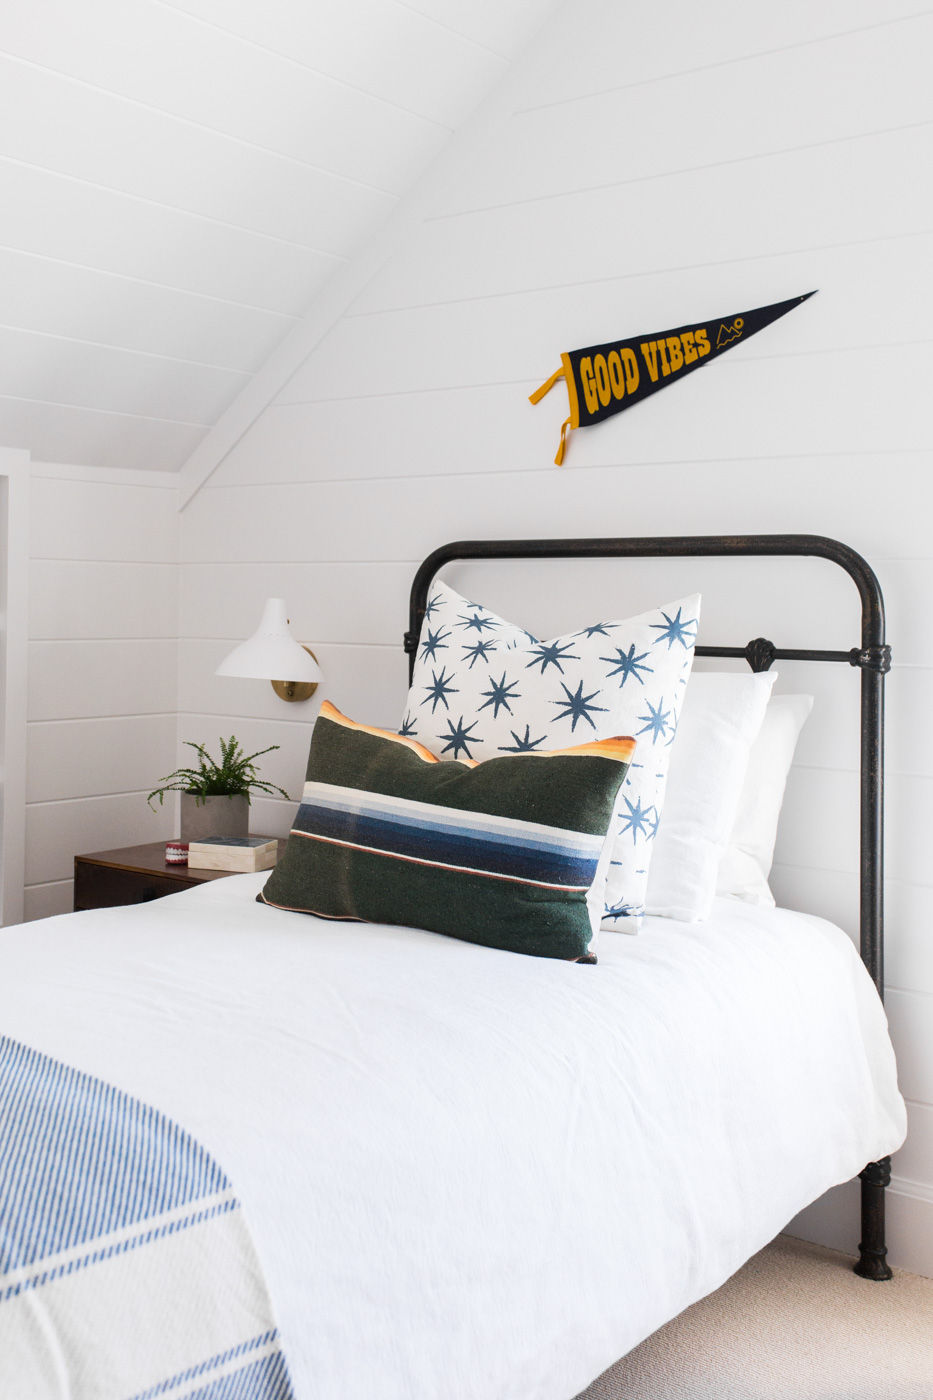 Cute boy's room with iron bed and good vibes pennant || Studio McGee